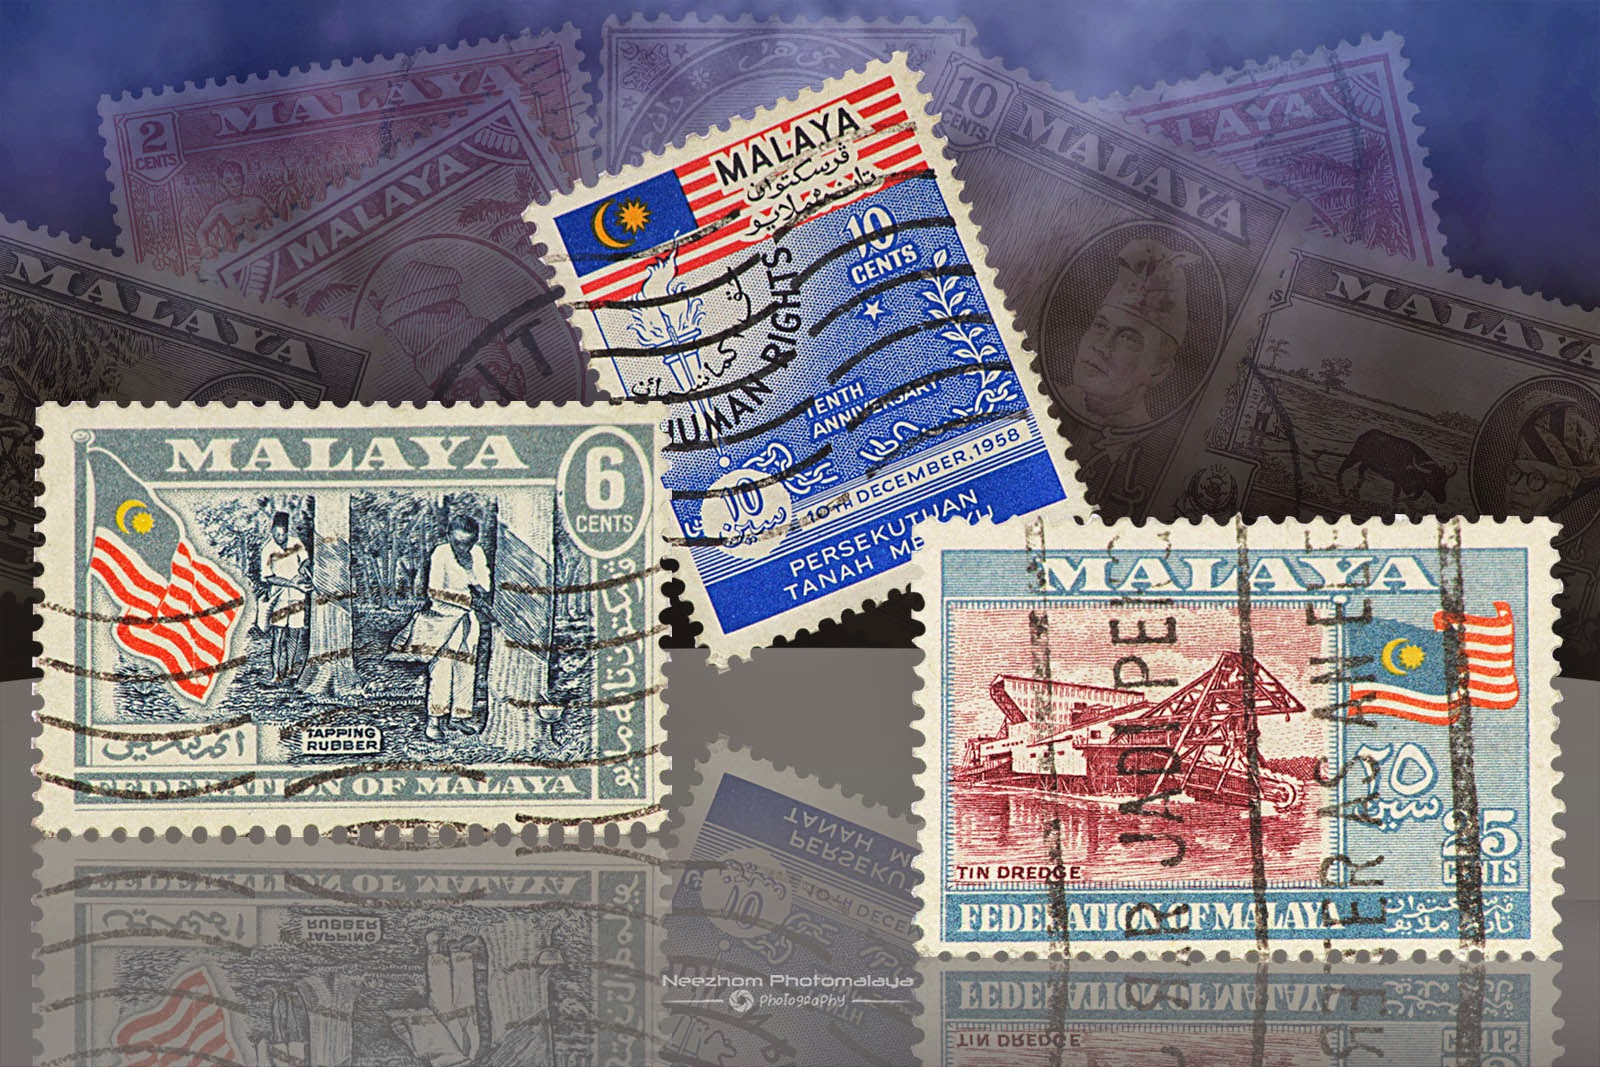 Malaya stamps 6 Cents Tapping rubber, 10 Cents Human Rights Tenth Anniversary 1958, 25 Cents Tin dredge